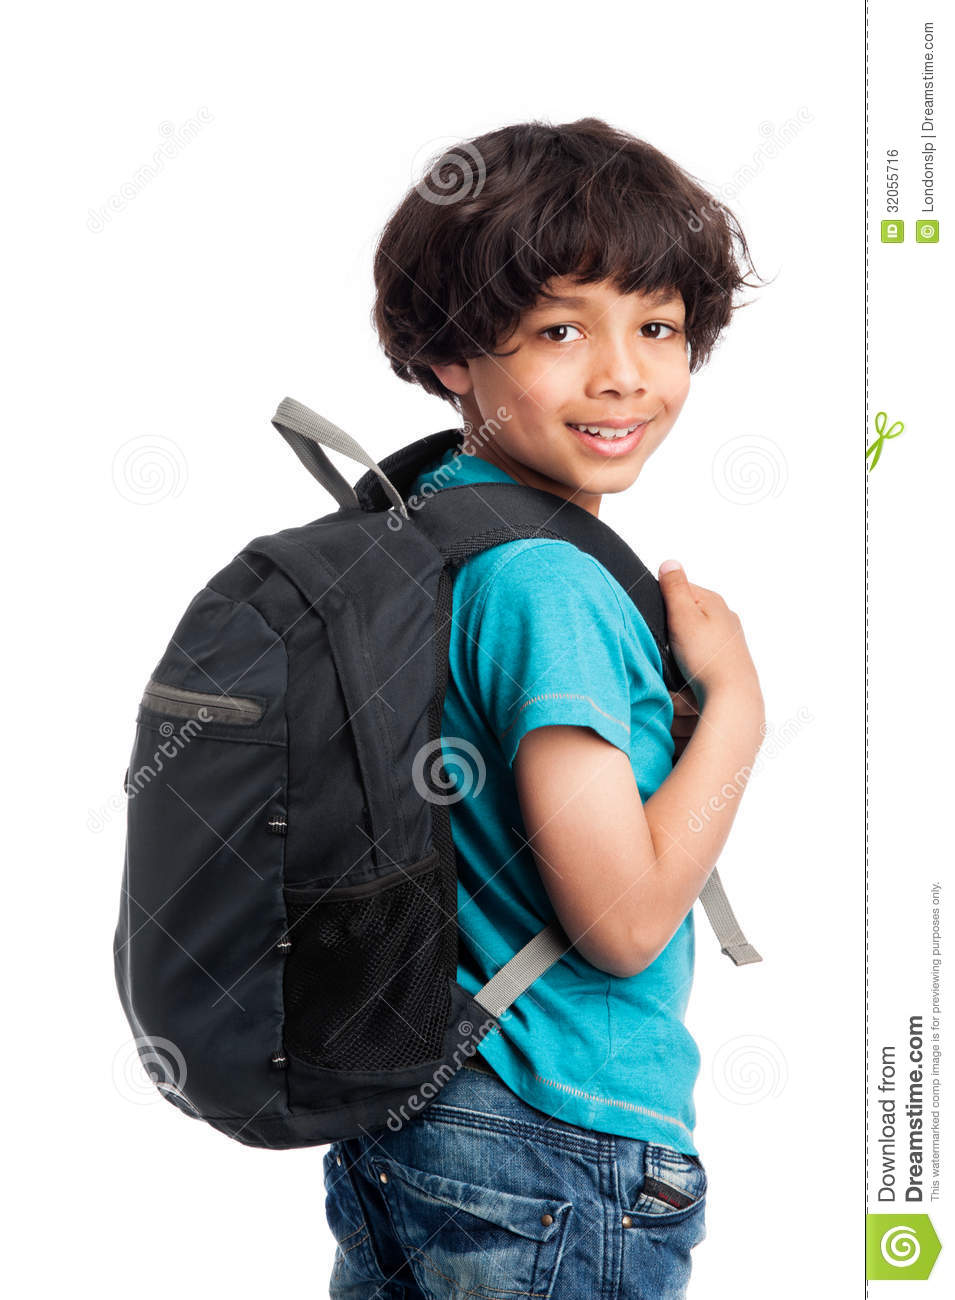 Cute Mixed Race Boy With Rucksack On Back Stock Photo